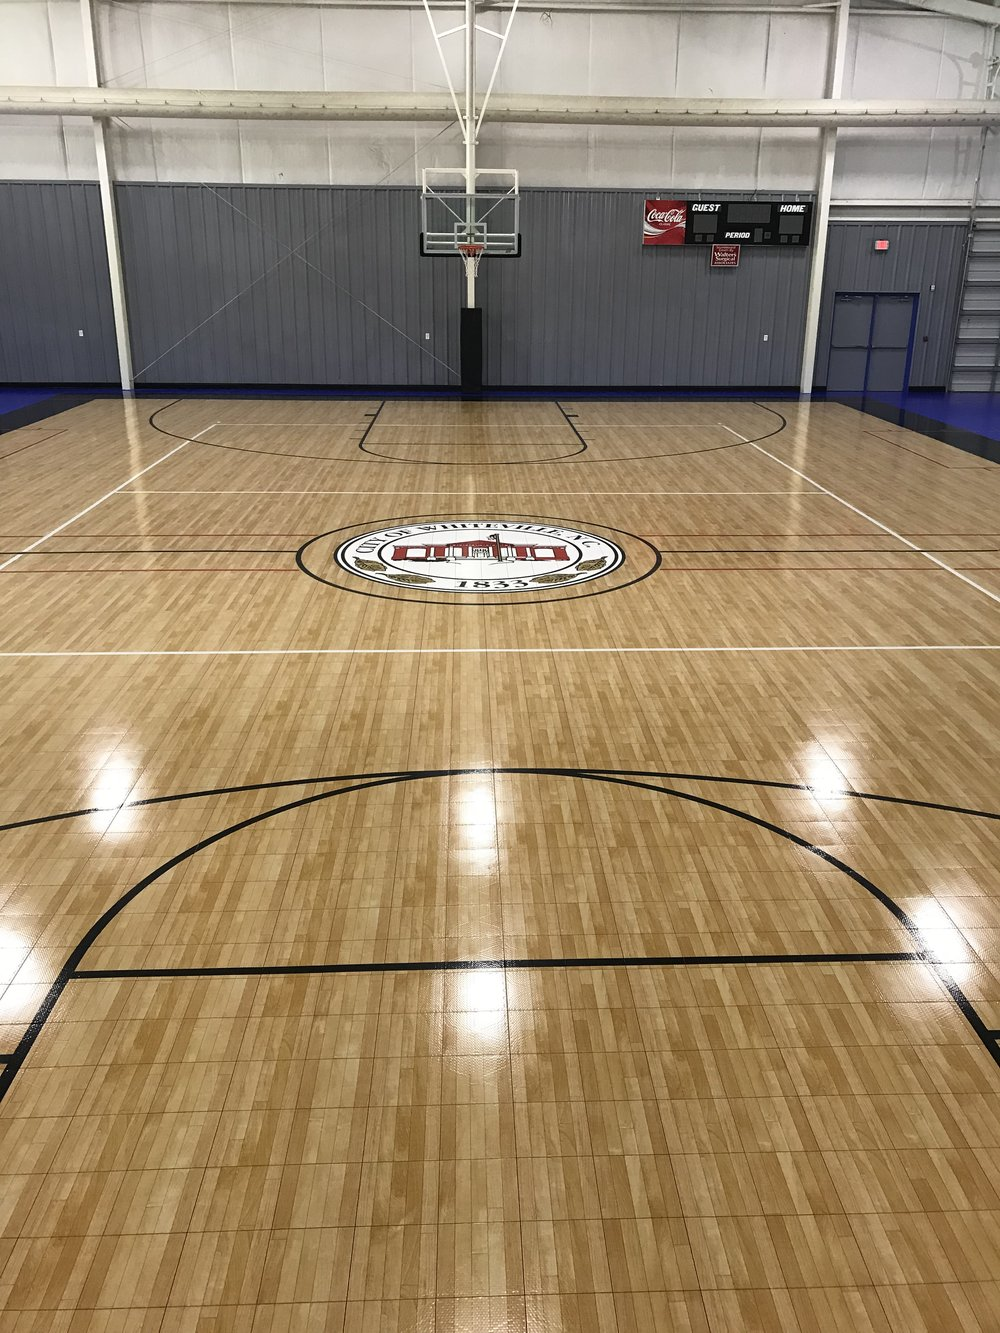 Newly renovated basketball court